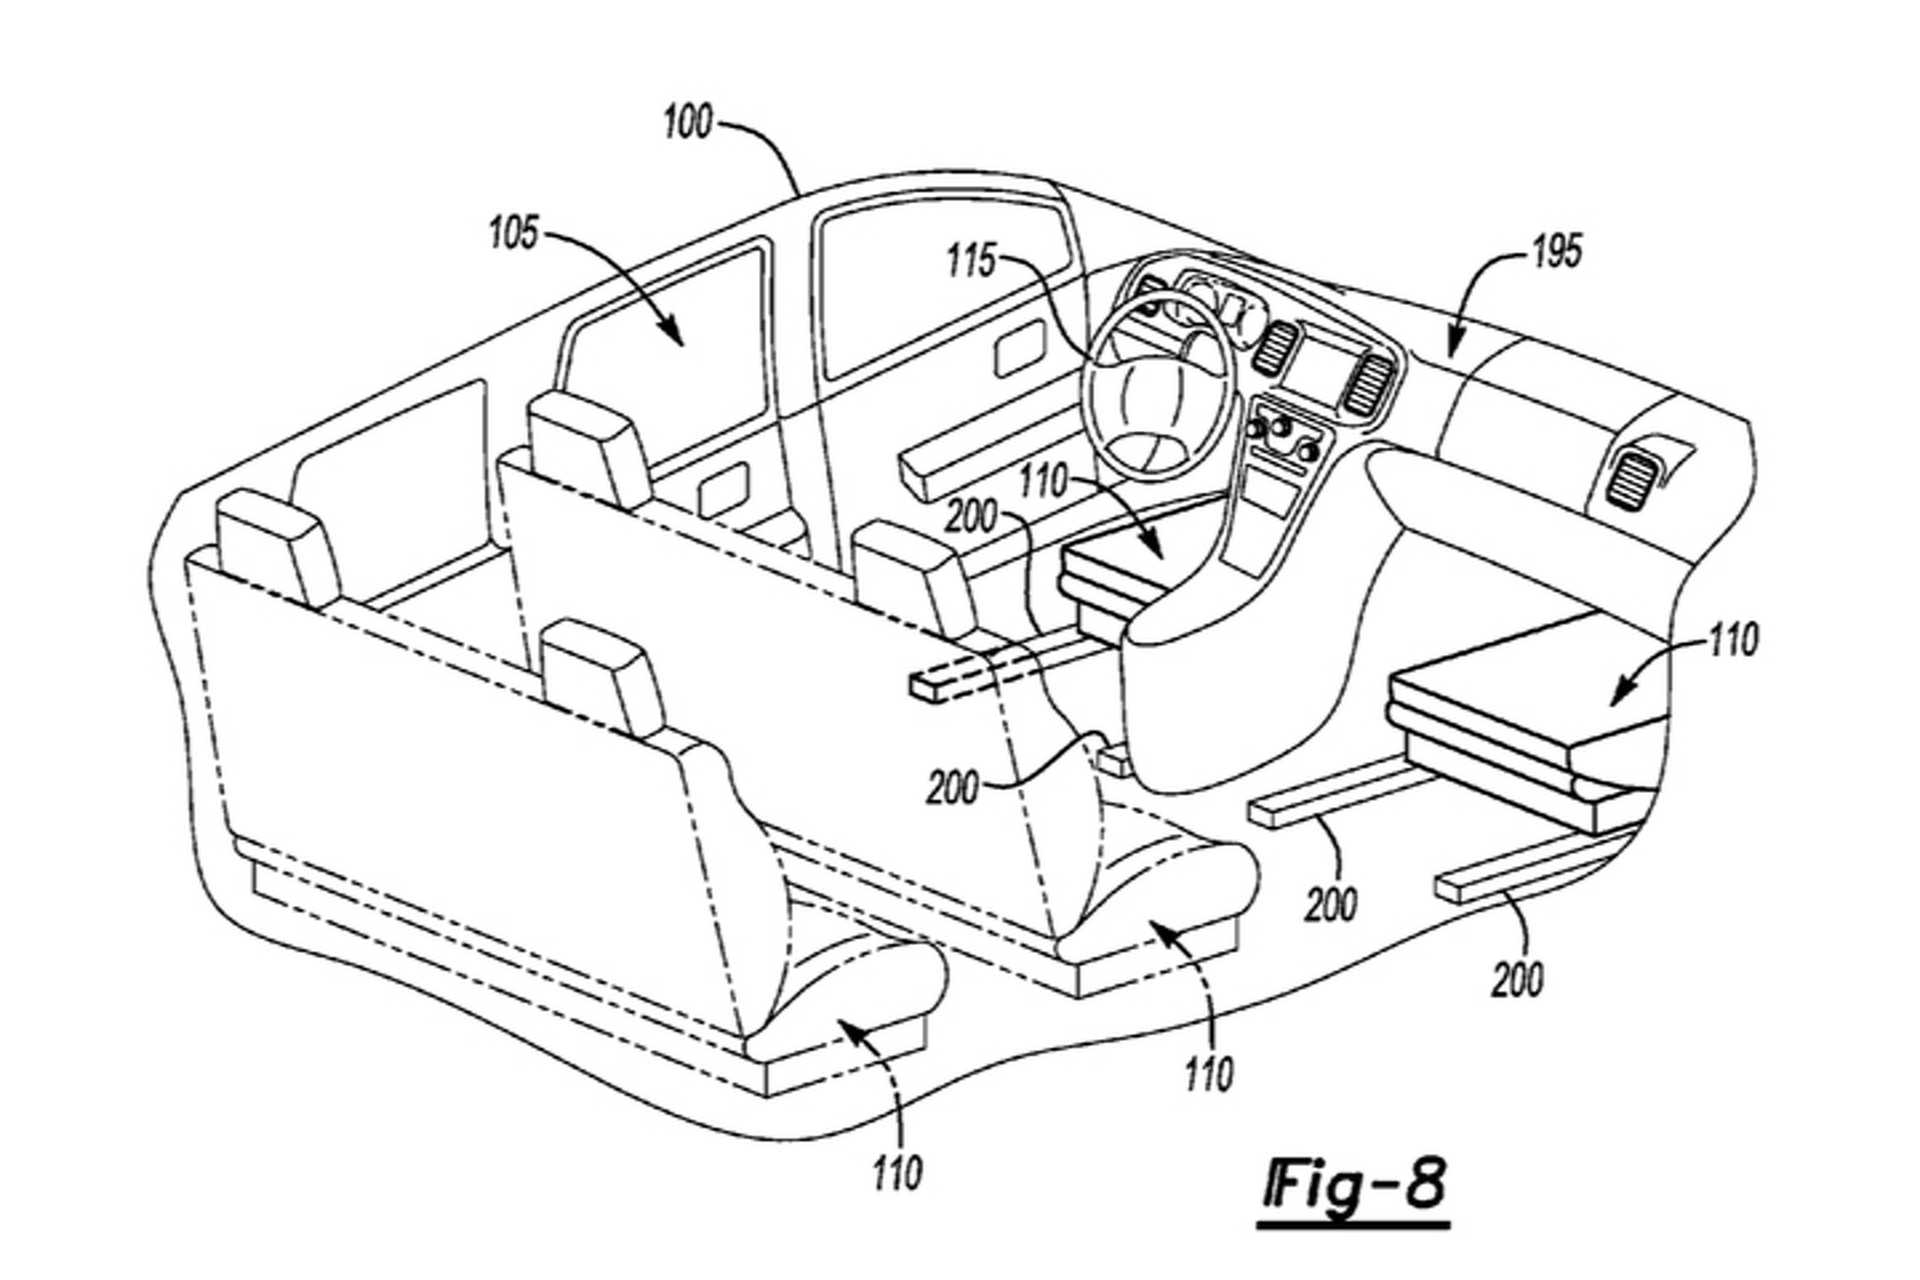 New Ford Patent Reveals Shape Shifting Car Interior